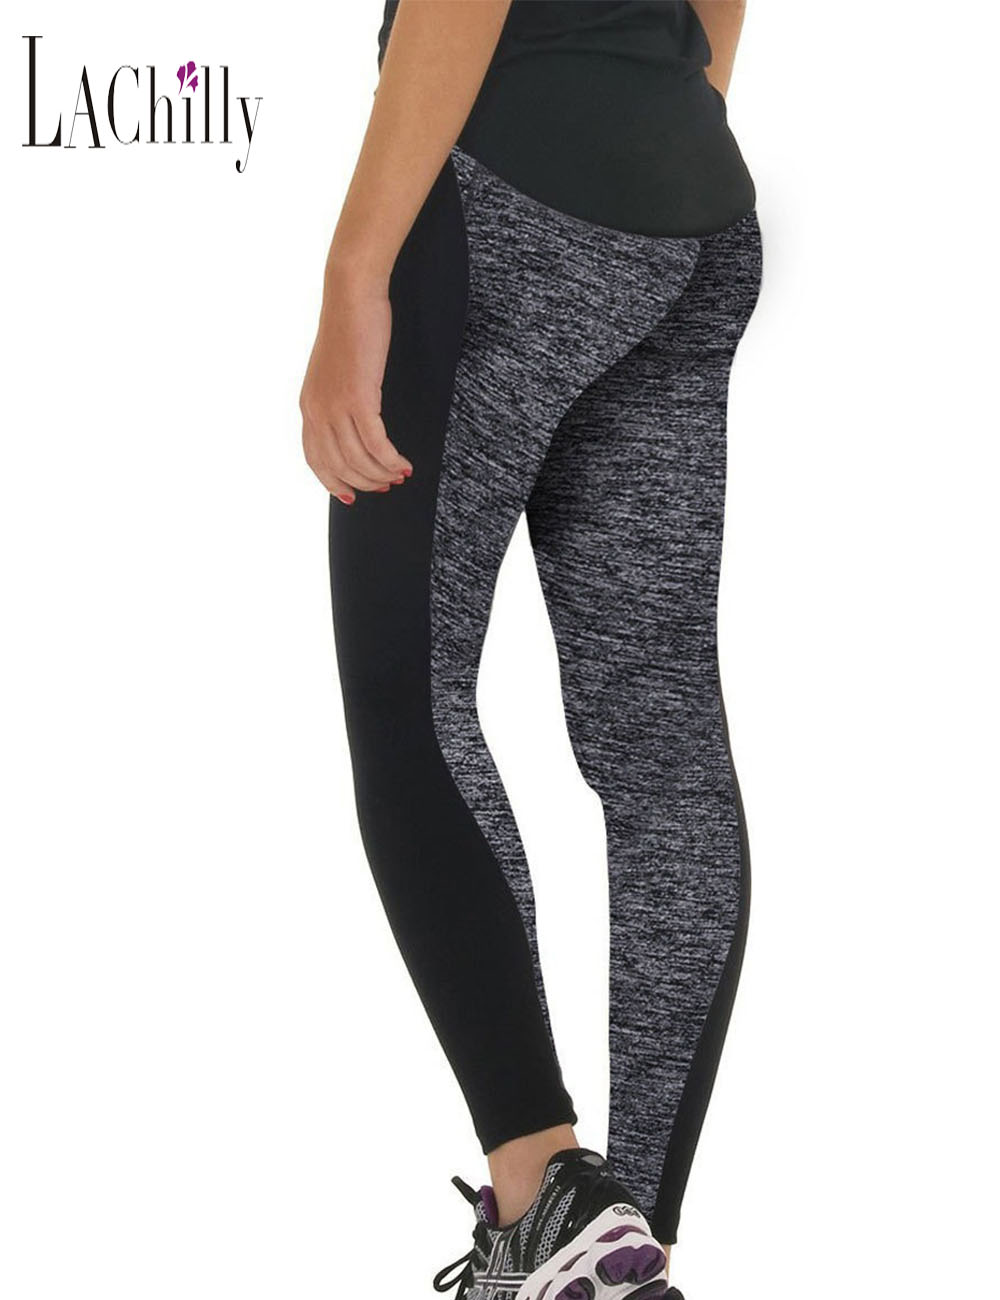 Sportswear Exercise-Pants Running Woman The Fitness Tights Hip-Joint Elastic-Waist Gym